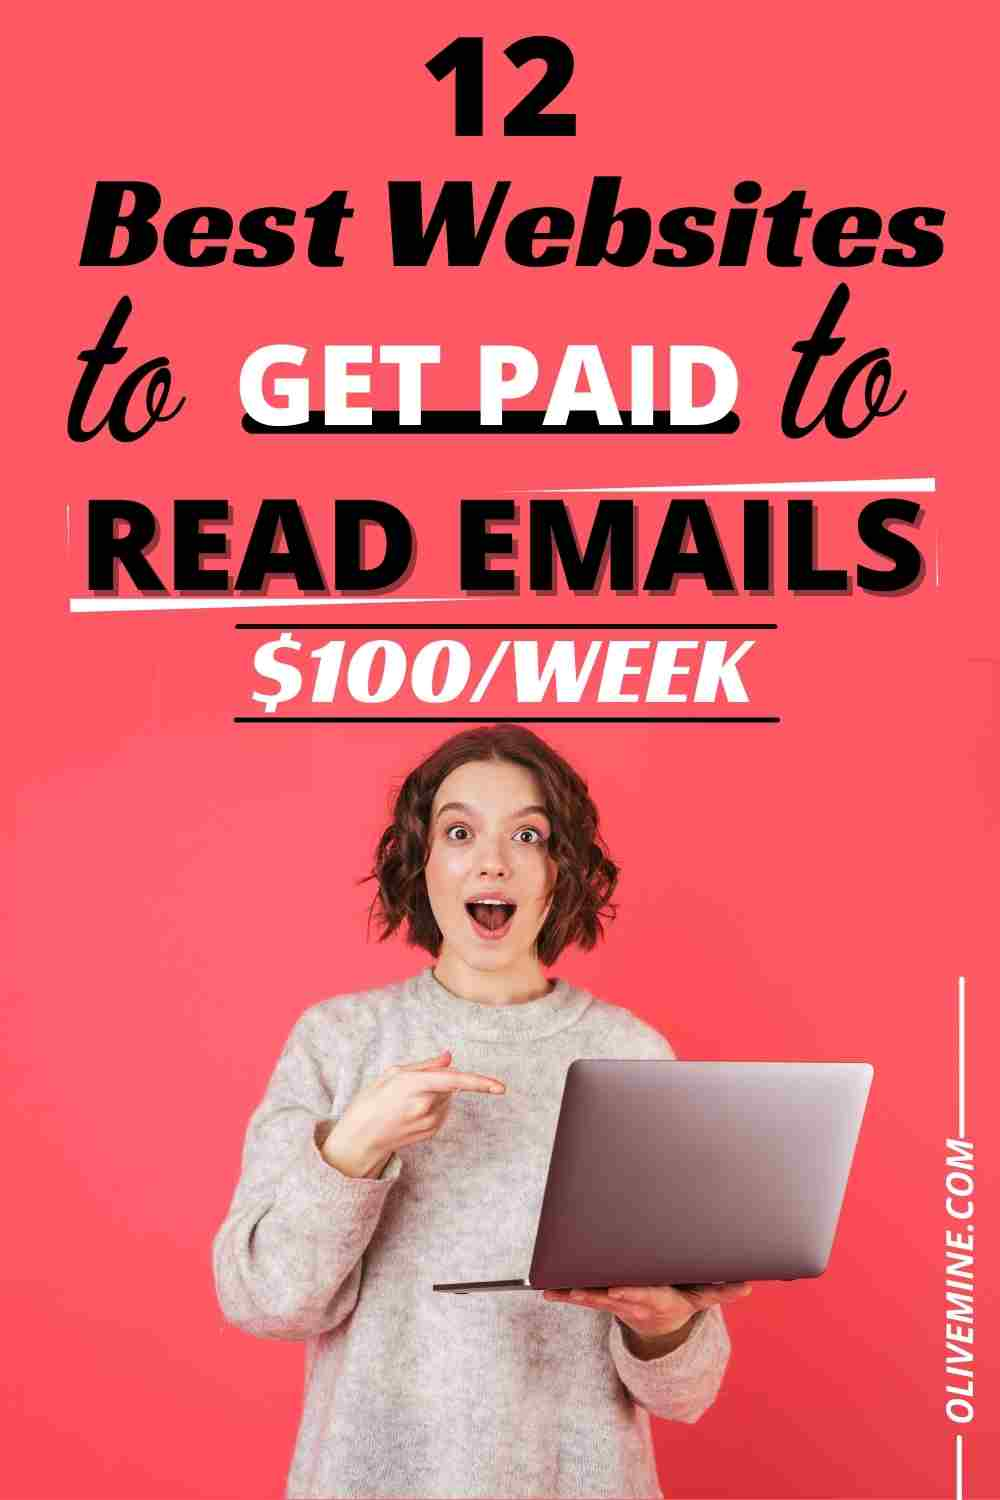 get paid to read emails